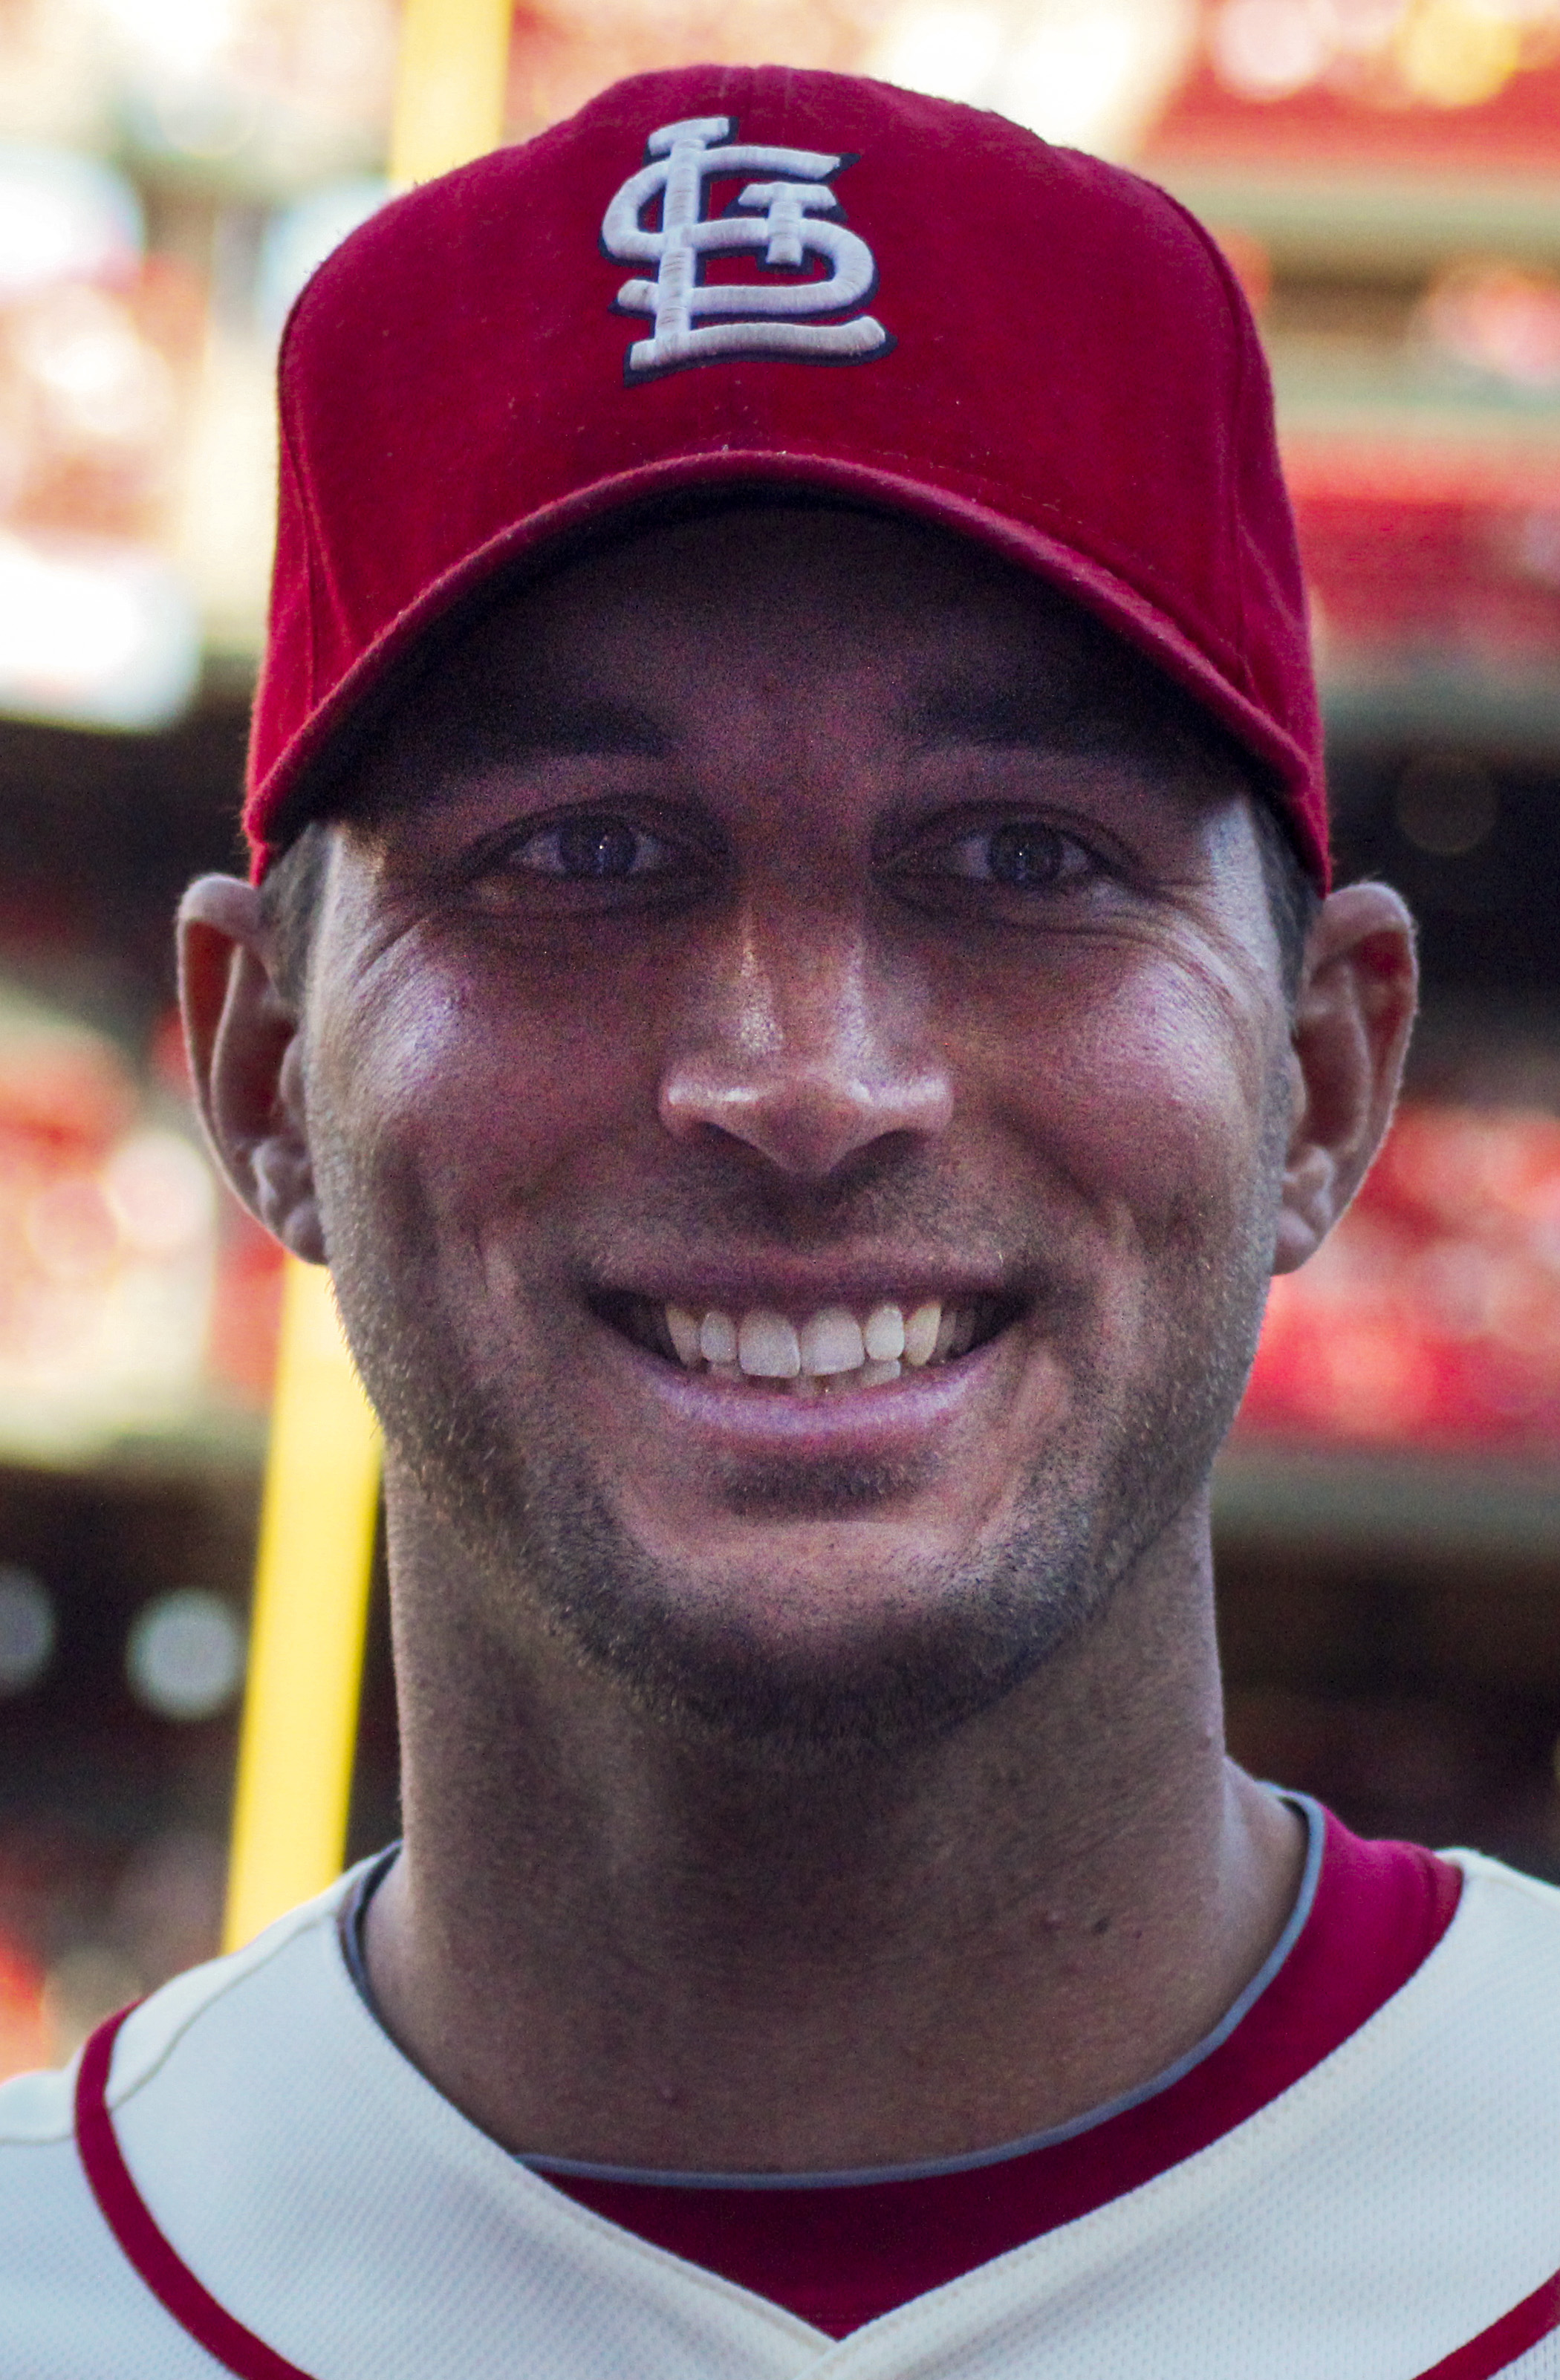 Adam Wainwright 2020 Mittelbraun Haar & Alternative Haarstil.